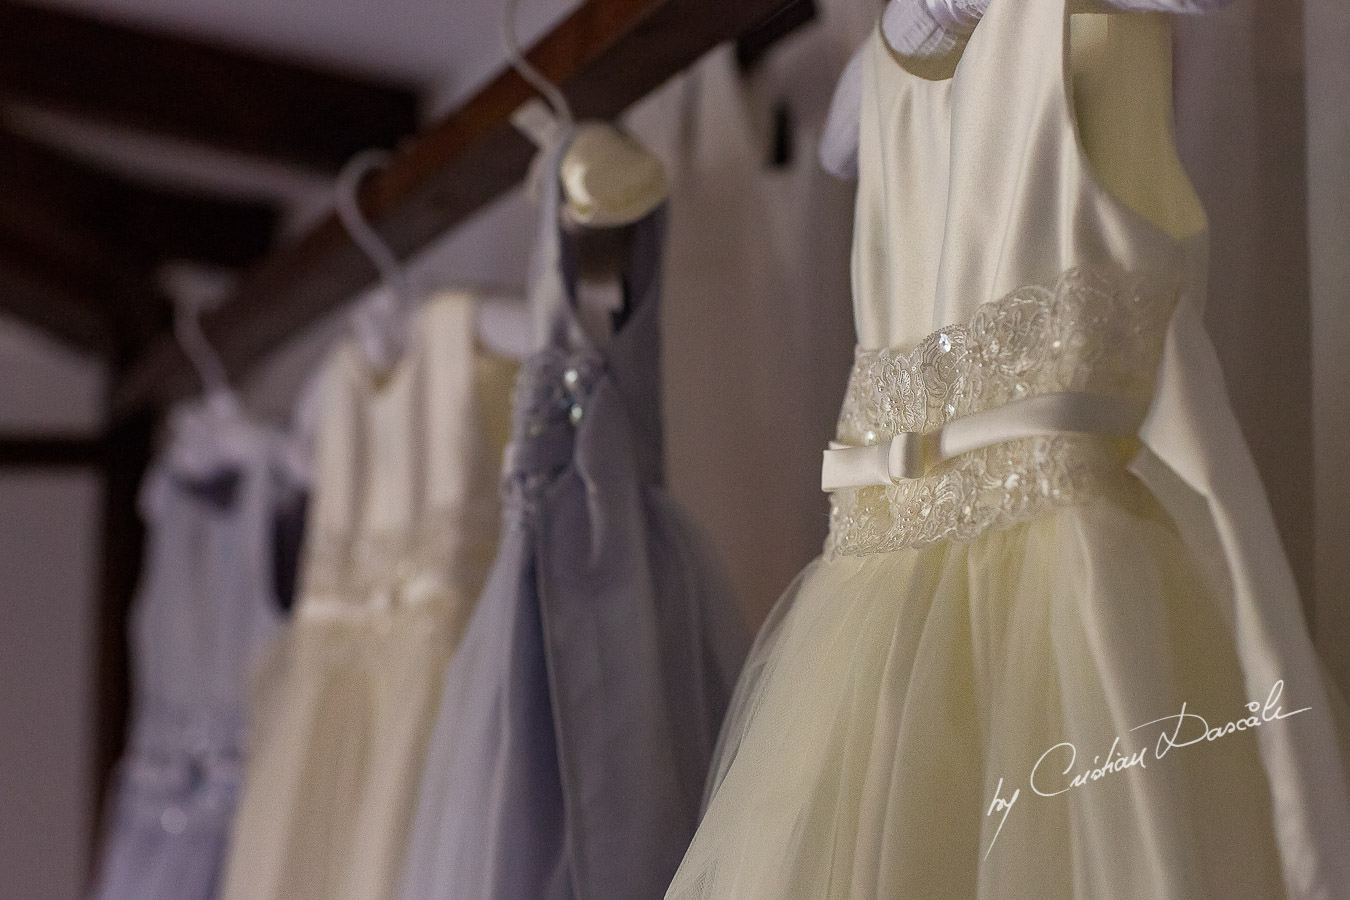 Wedding dresses captured at a Vasilias Nikoklis Inn Wedding in Paphos. Cyprus Wedding Photography by Cristian Dascalu.